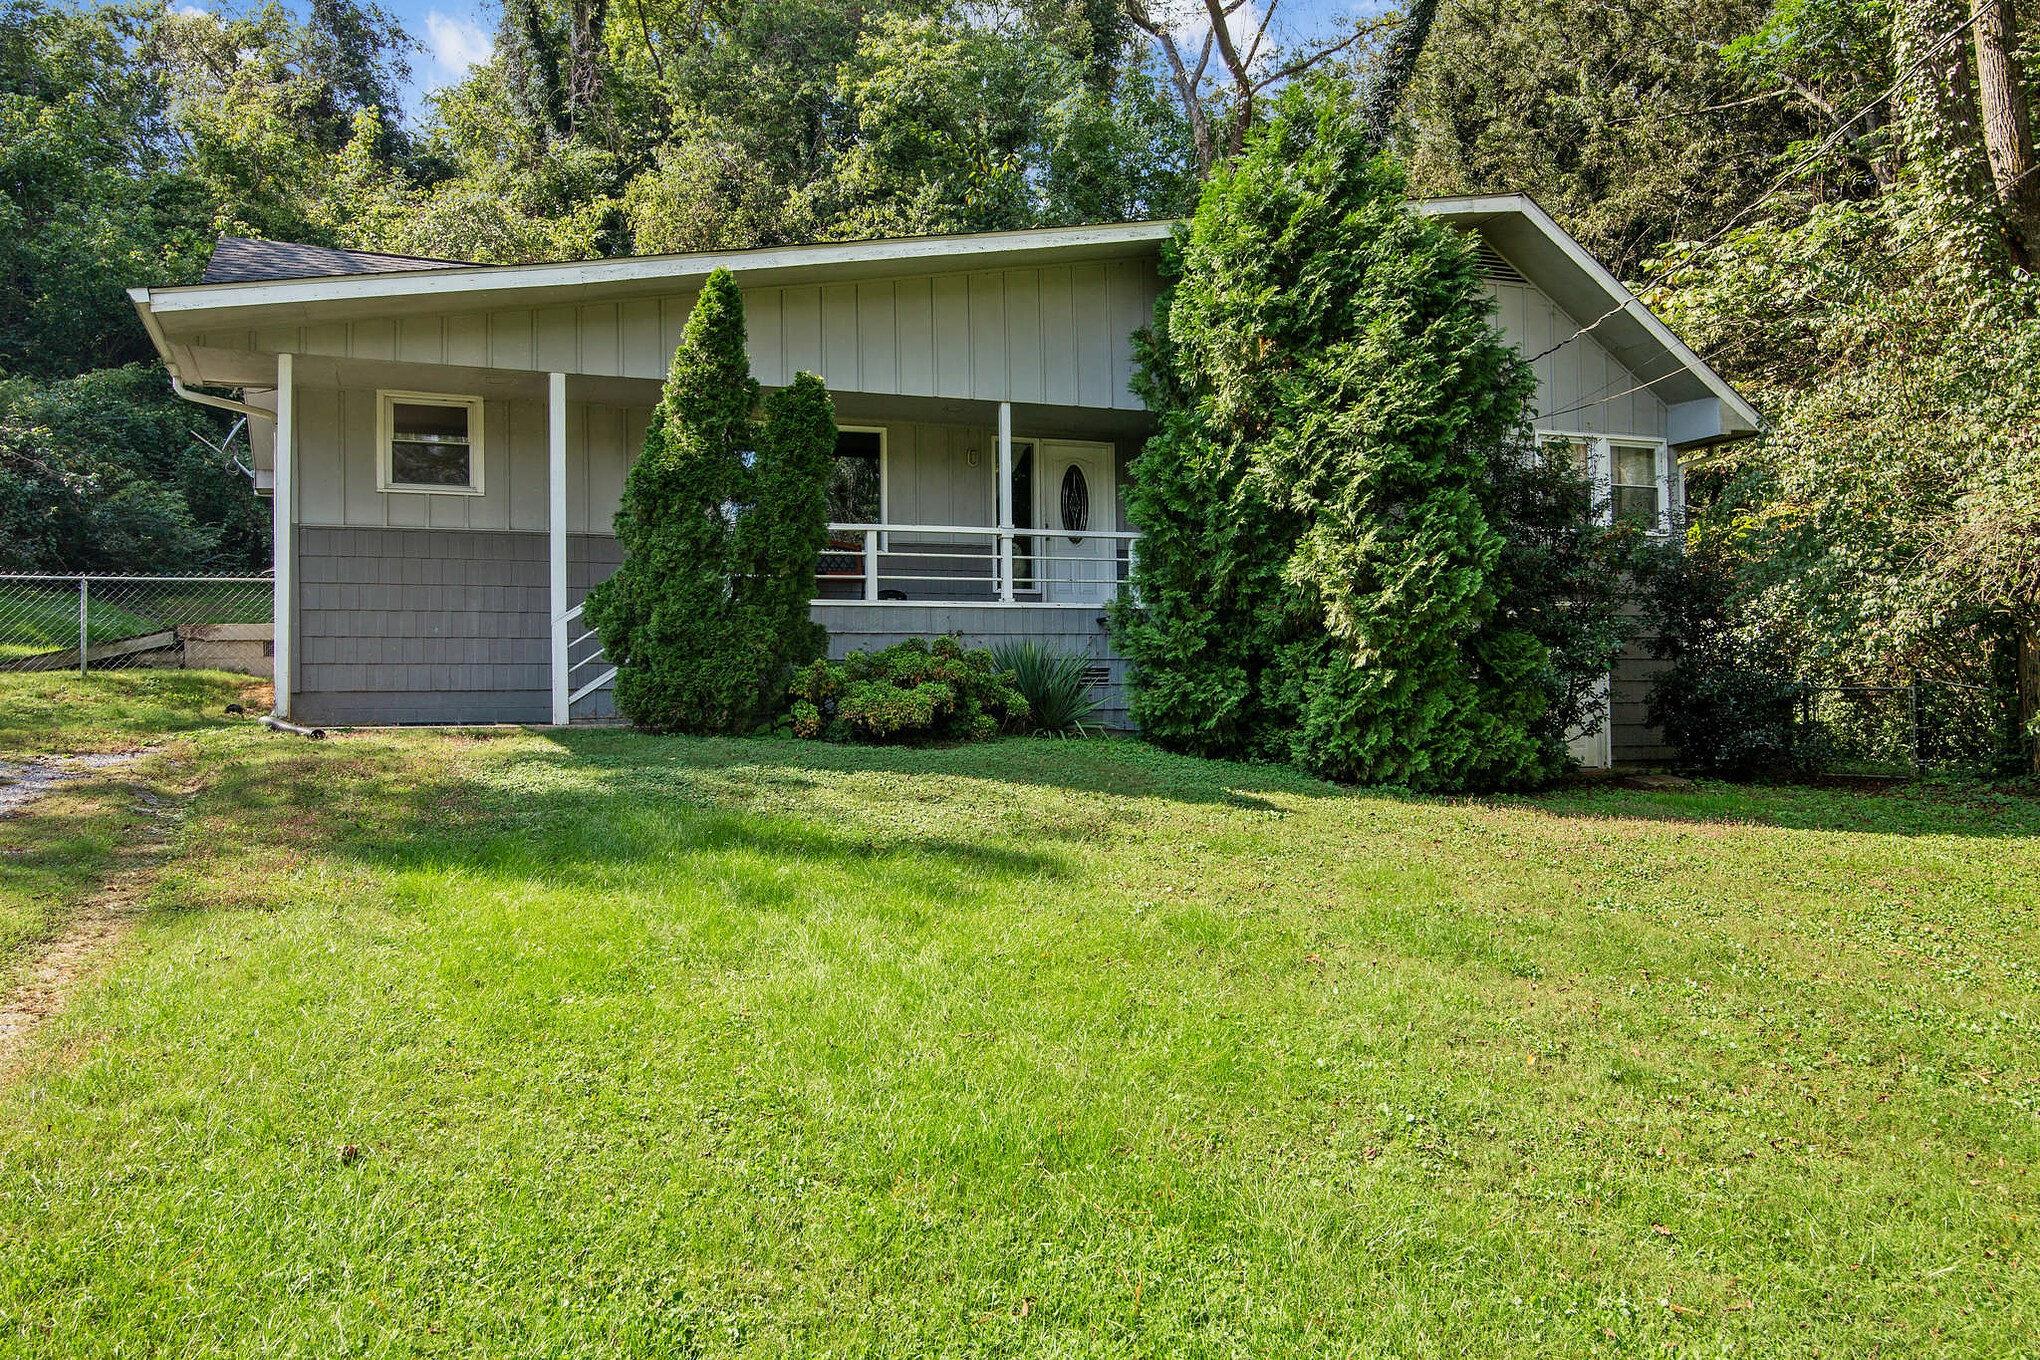 Great family home with tons of potential. Located on a cul-de-sac with a large fenced in private backyard. Home backs up to Mill Creek Park. Hardwood floors on most of the main level. So many windows, lots of natural light. No showings til after 10am 10/15/2021